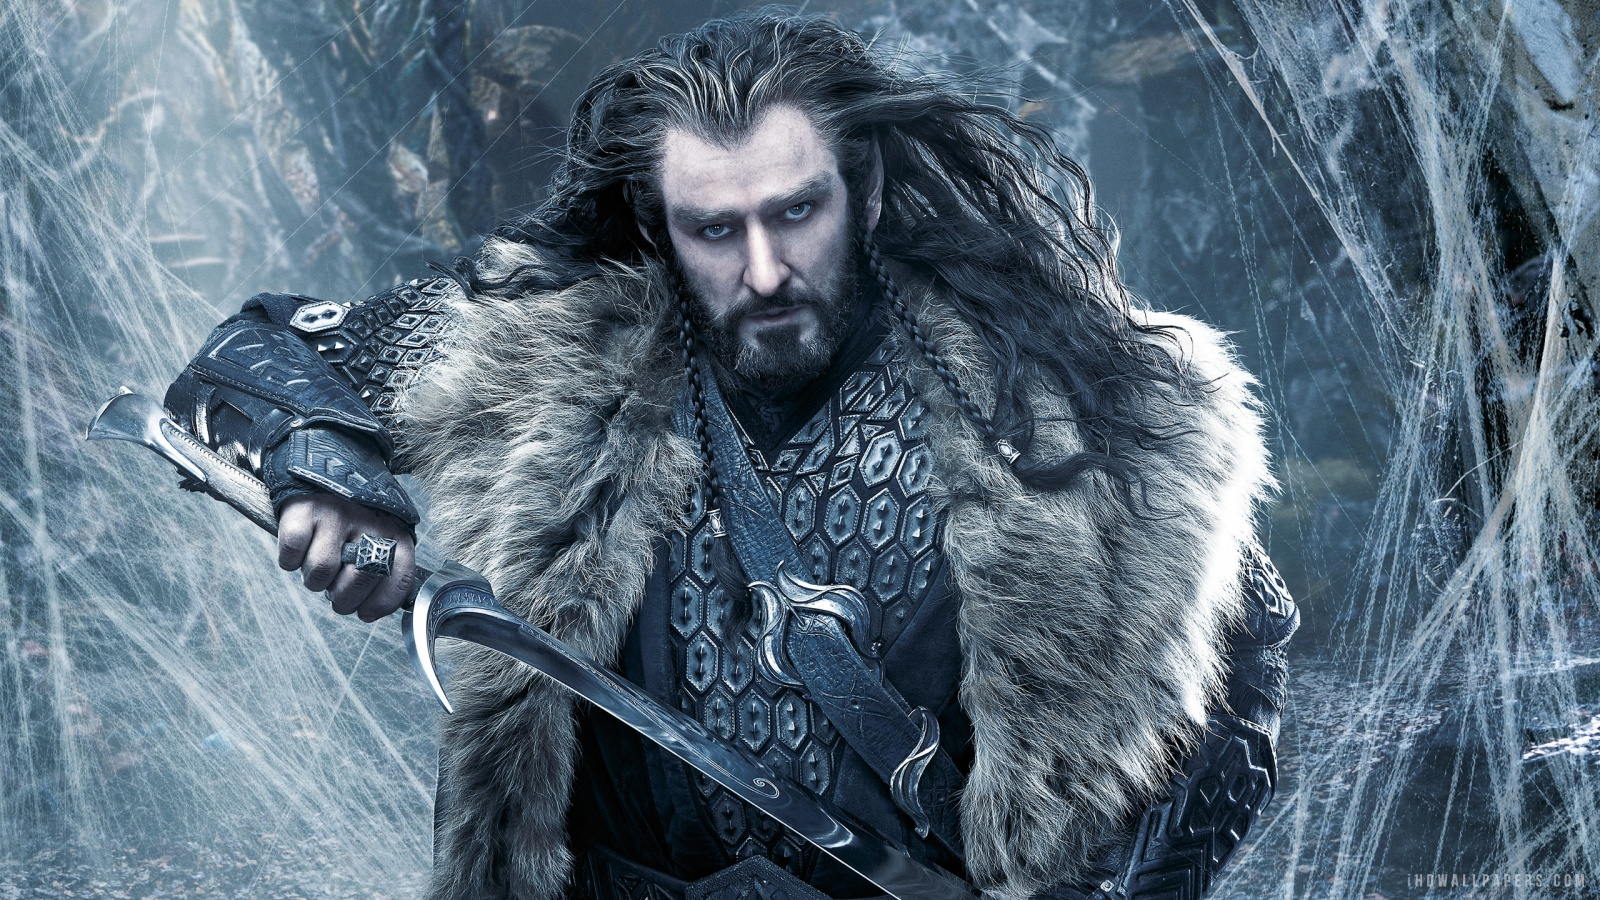 Thorin in The Hobbit 2 HD Wallpaper   iHD Wallpapers 1600x900